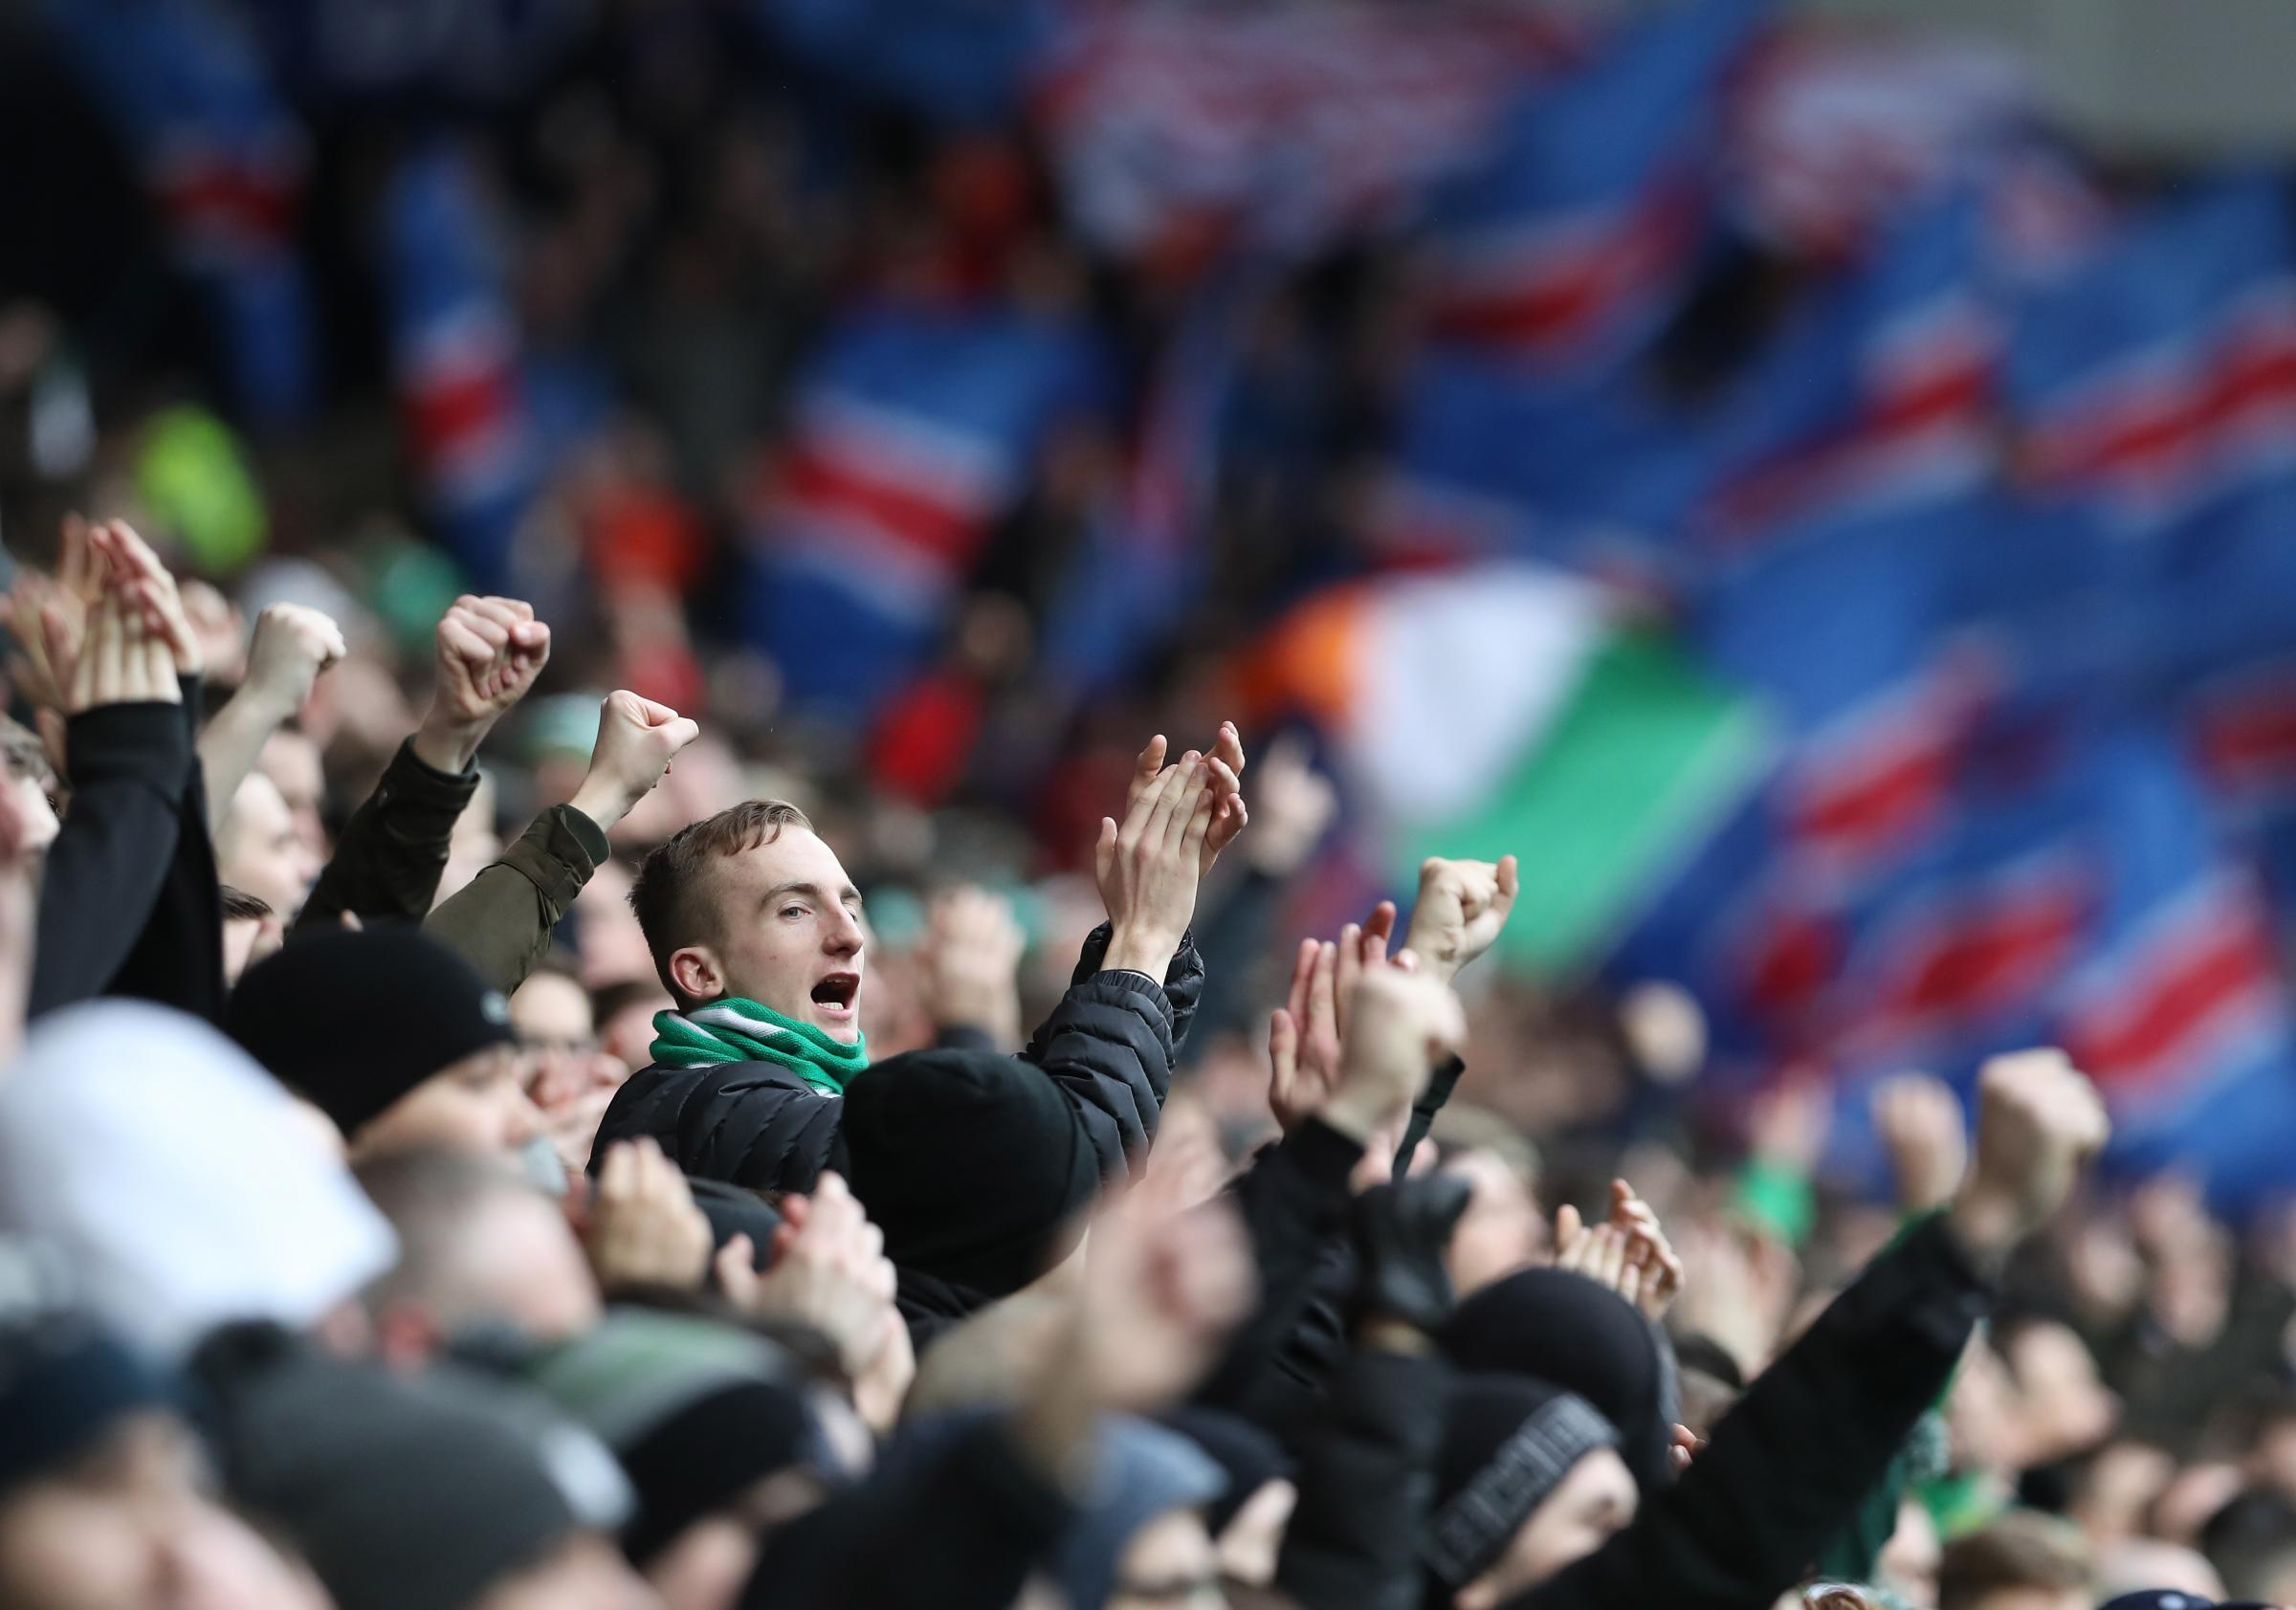 UEFA: Celtic and Rangers among best-supported clubs in Europe